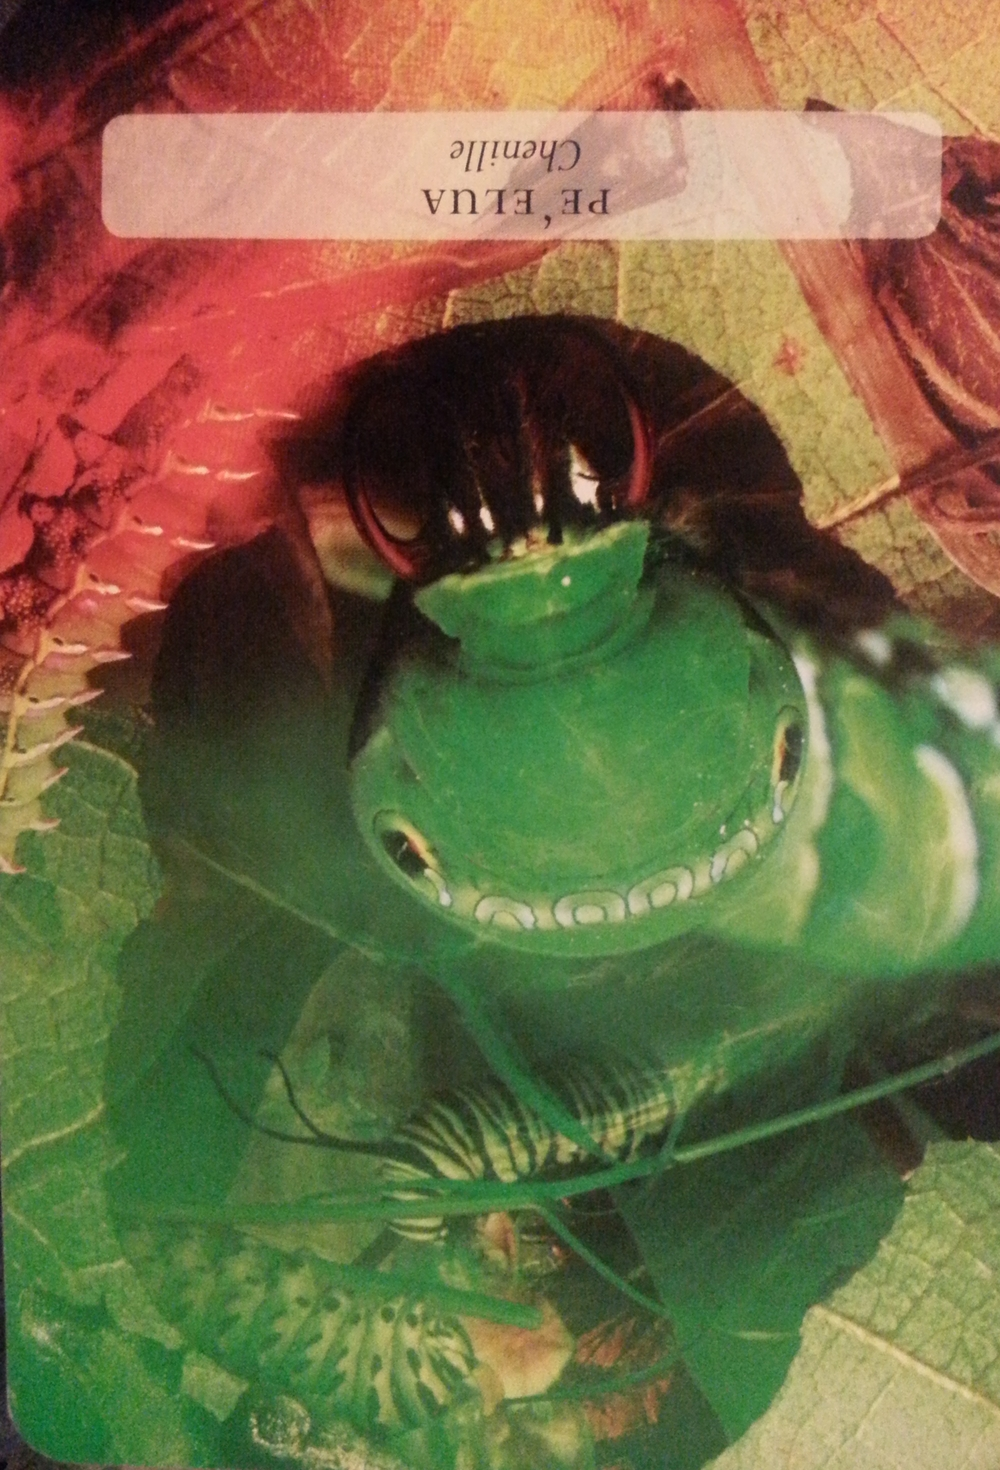 FREYA'S DAY JULY 31 ST 2015-PE'ELUA- THE SCARED CATERPILLARTEACHES US GIVE OURSELVESROOM TO GROW